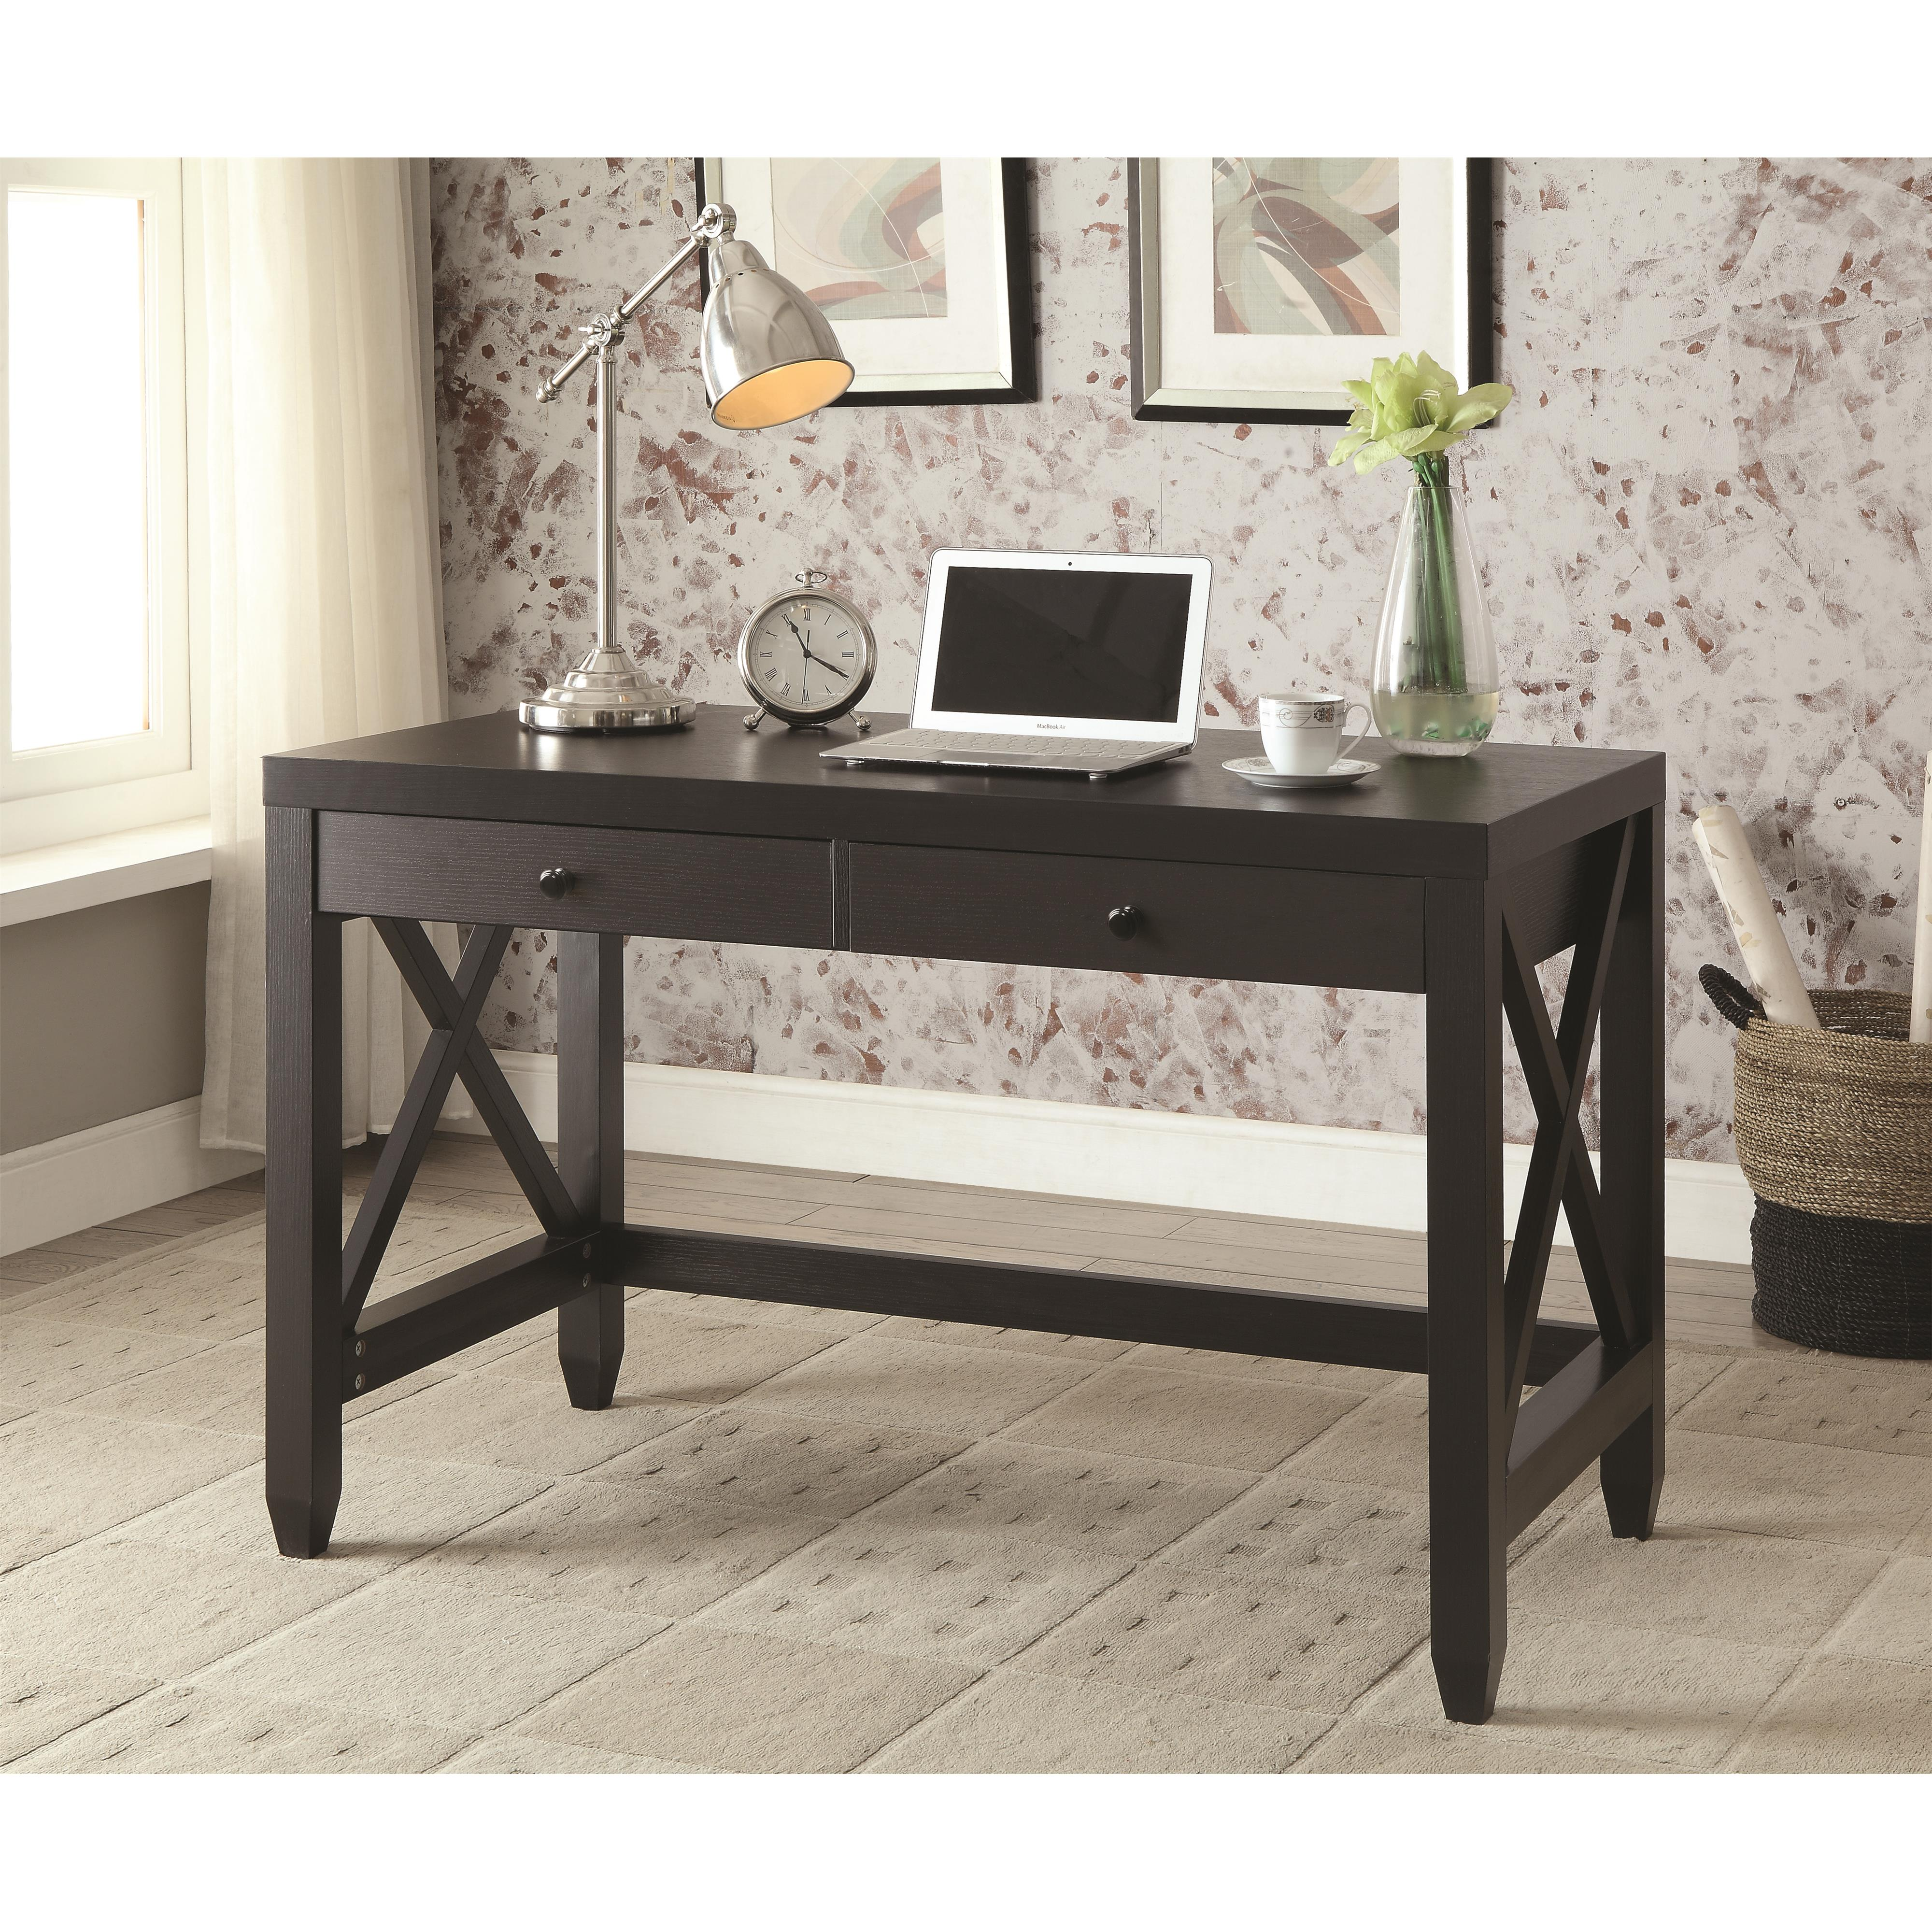 Humfrye Computer Desk by Coaster at Northeast Factory Direct